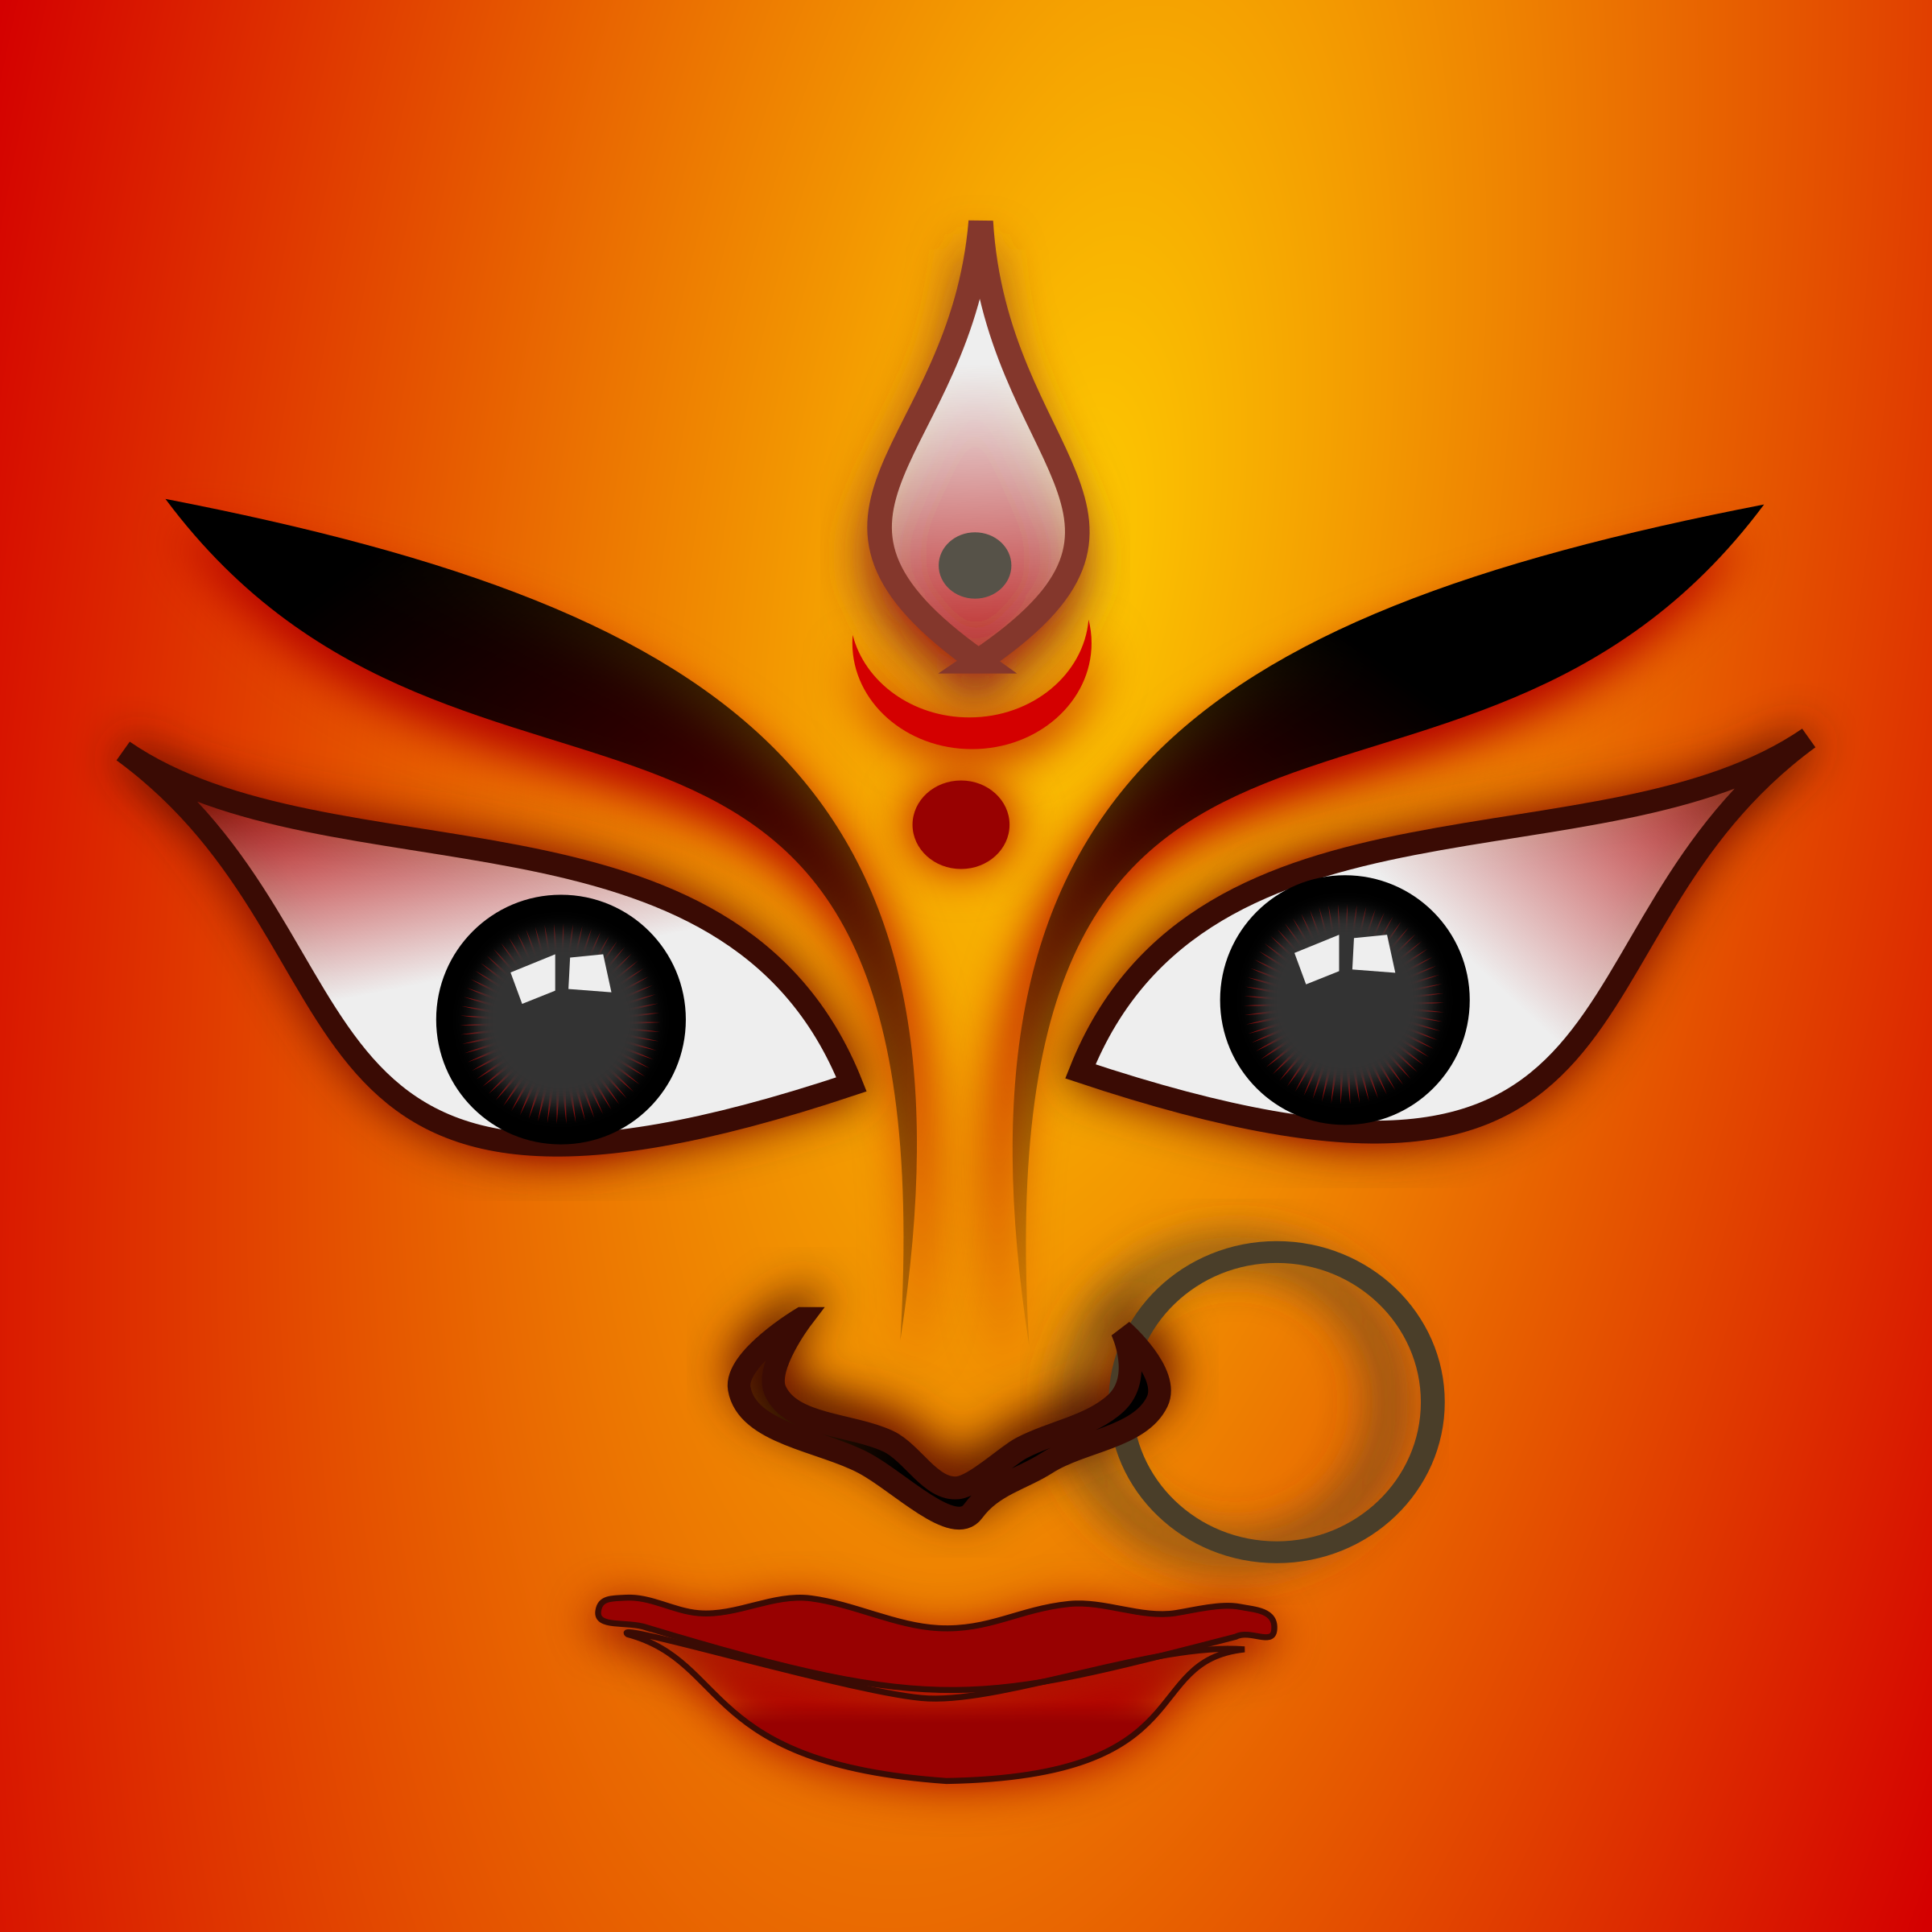 Gods clipart maa Clipart Clipart Clip Download on